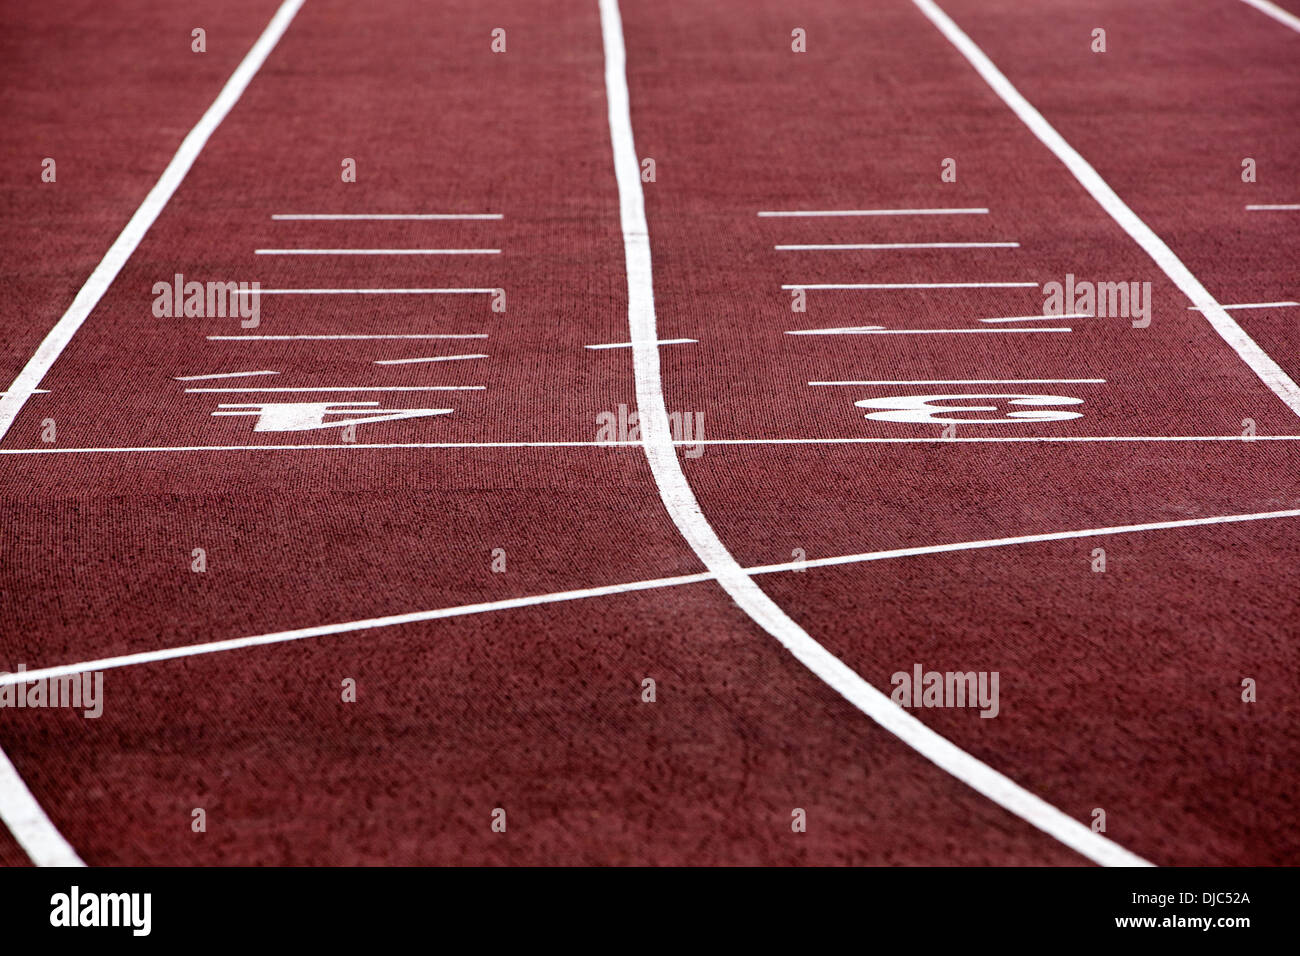 Selective focus on athletics track lane numbers - Stock Image